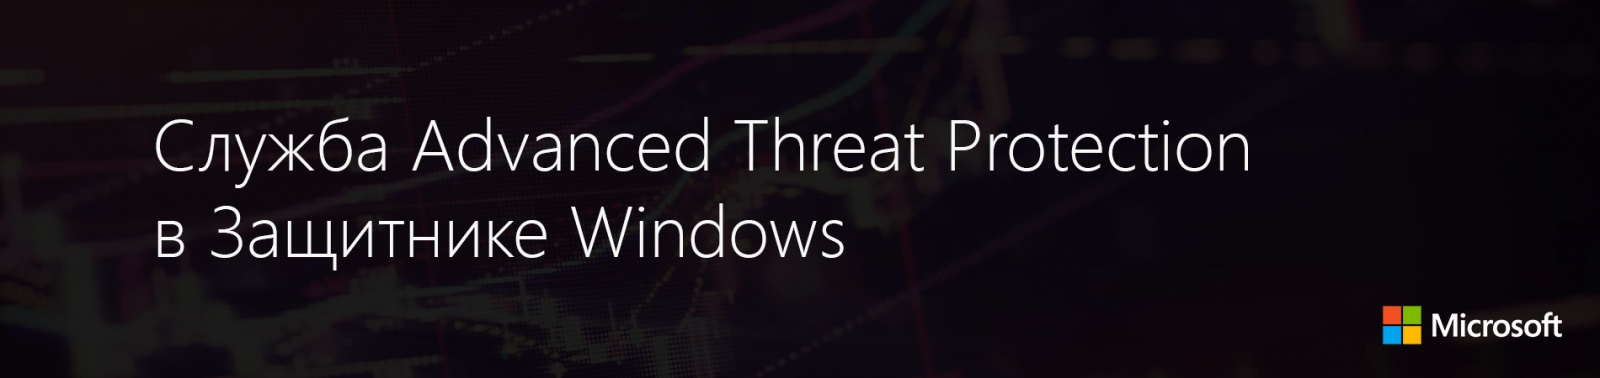 Служба Advanced Threat Protection в Защитнике Windows - 1